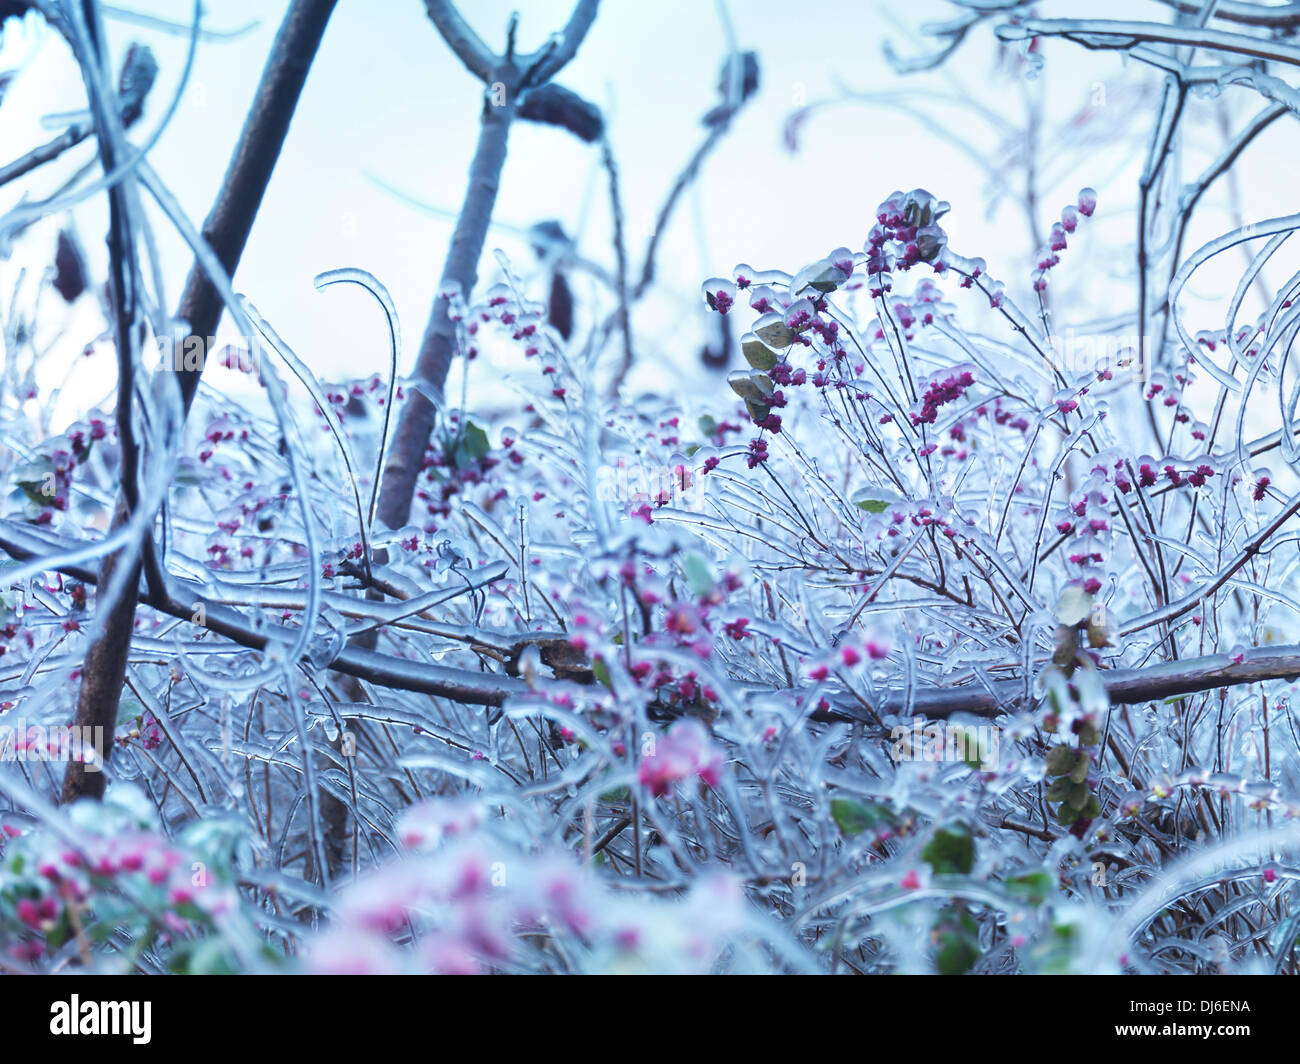 Frozen, covered with ice branches of plants and shrubs with pink berries. Artistic abstract nature scenery. - Stock Image